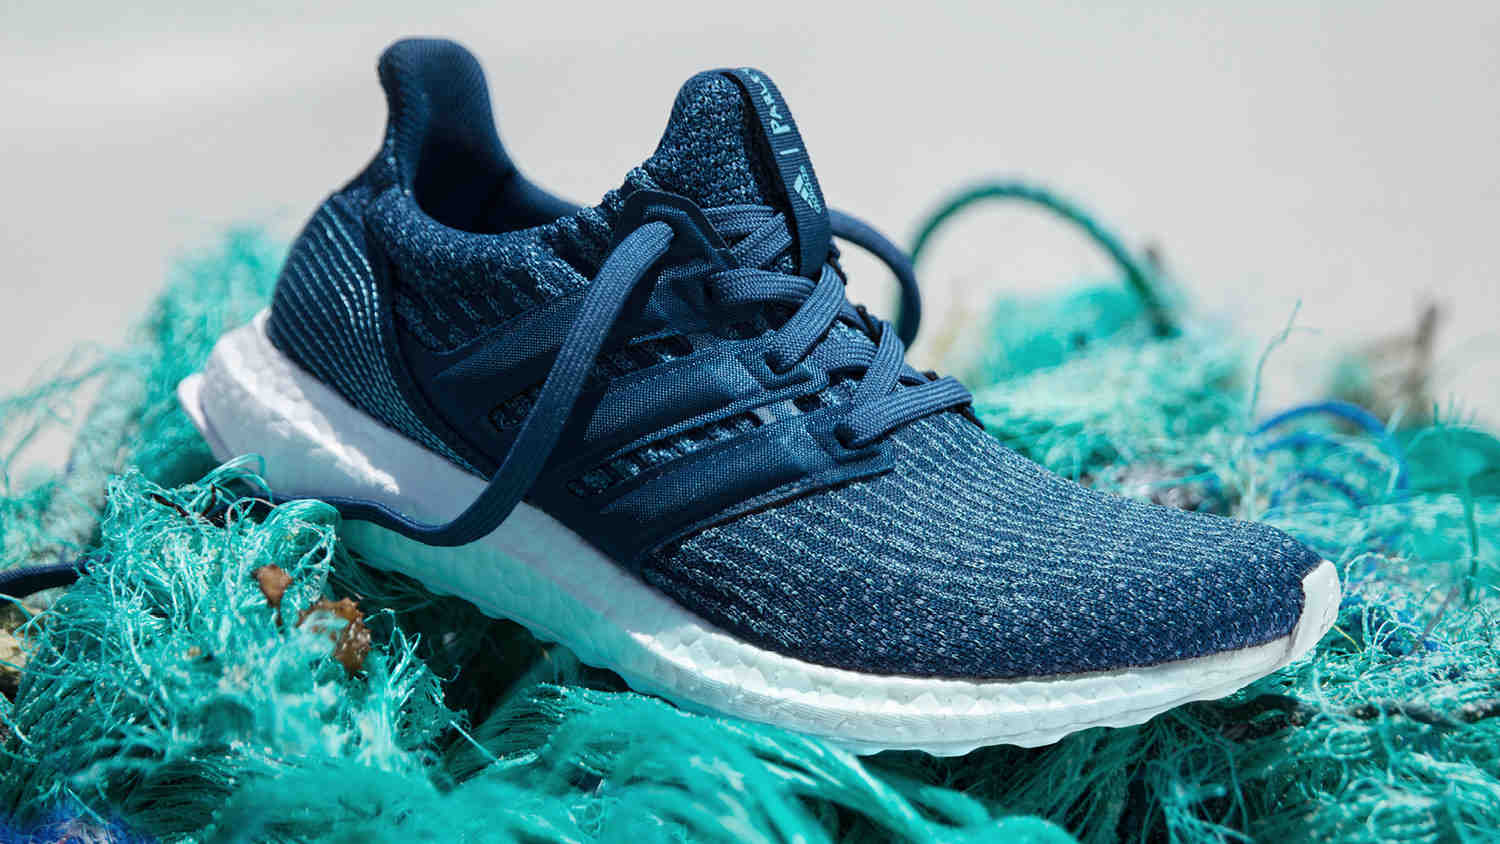 Adidas and Parley shoe